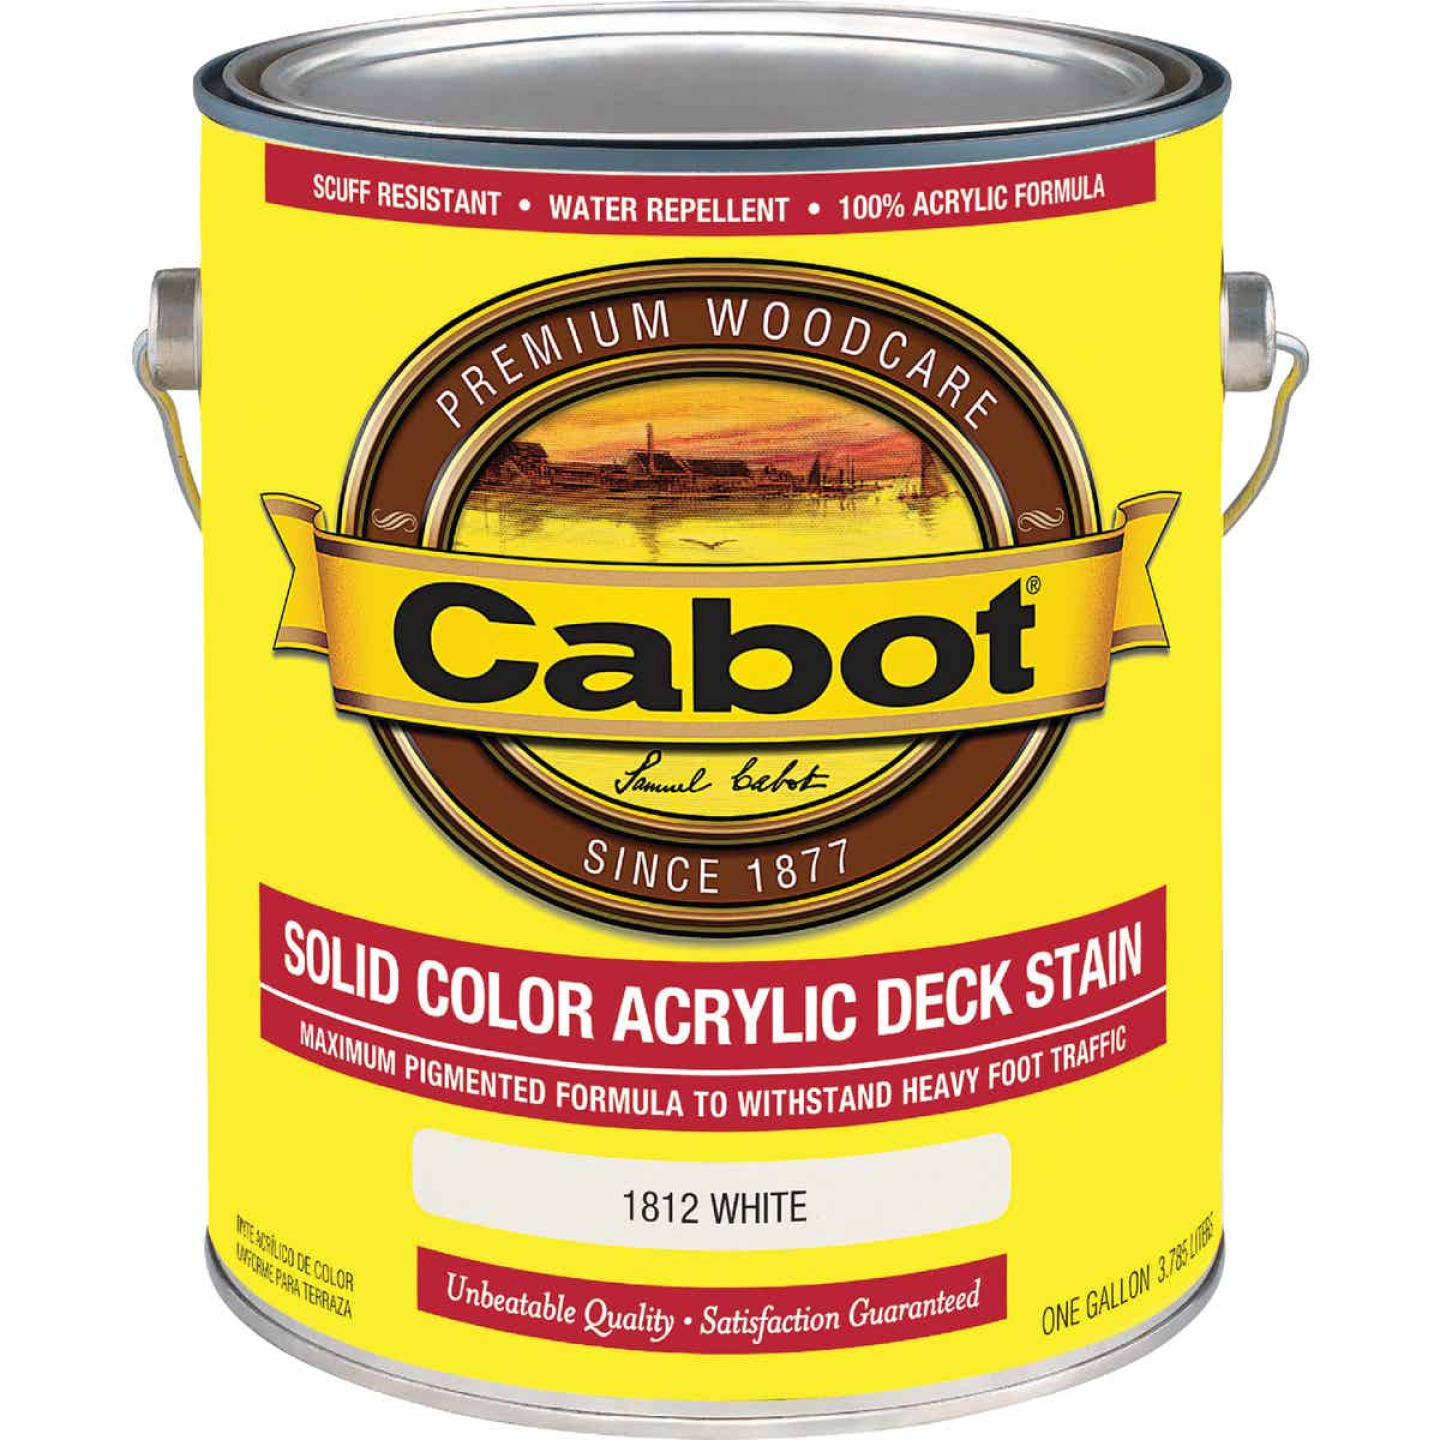 Cabot Solid Color Acrylic Deck Stain, White, 1 Gal. Image 1